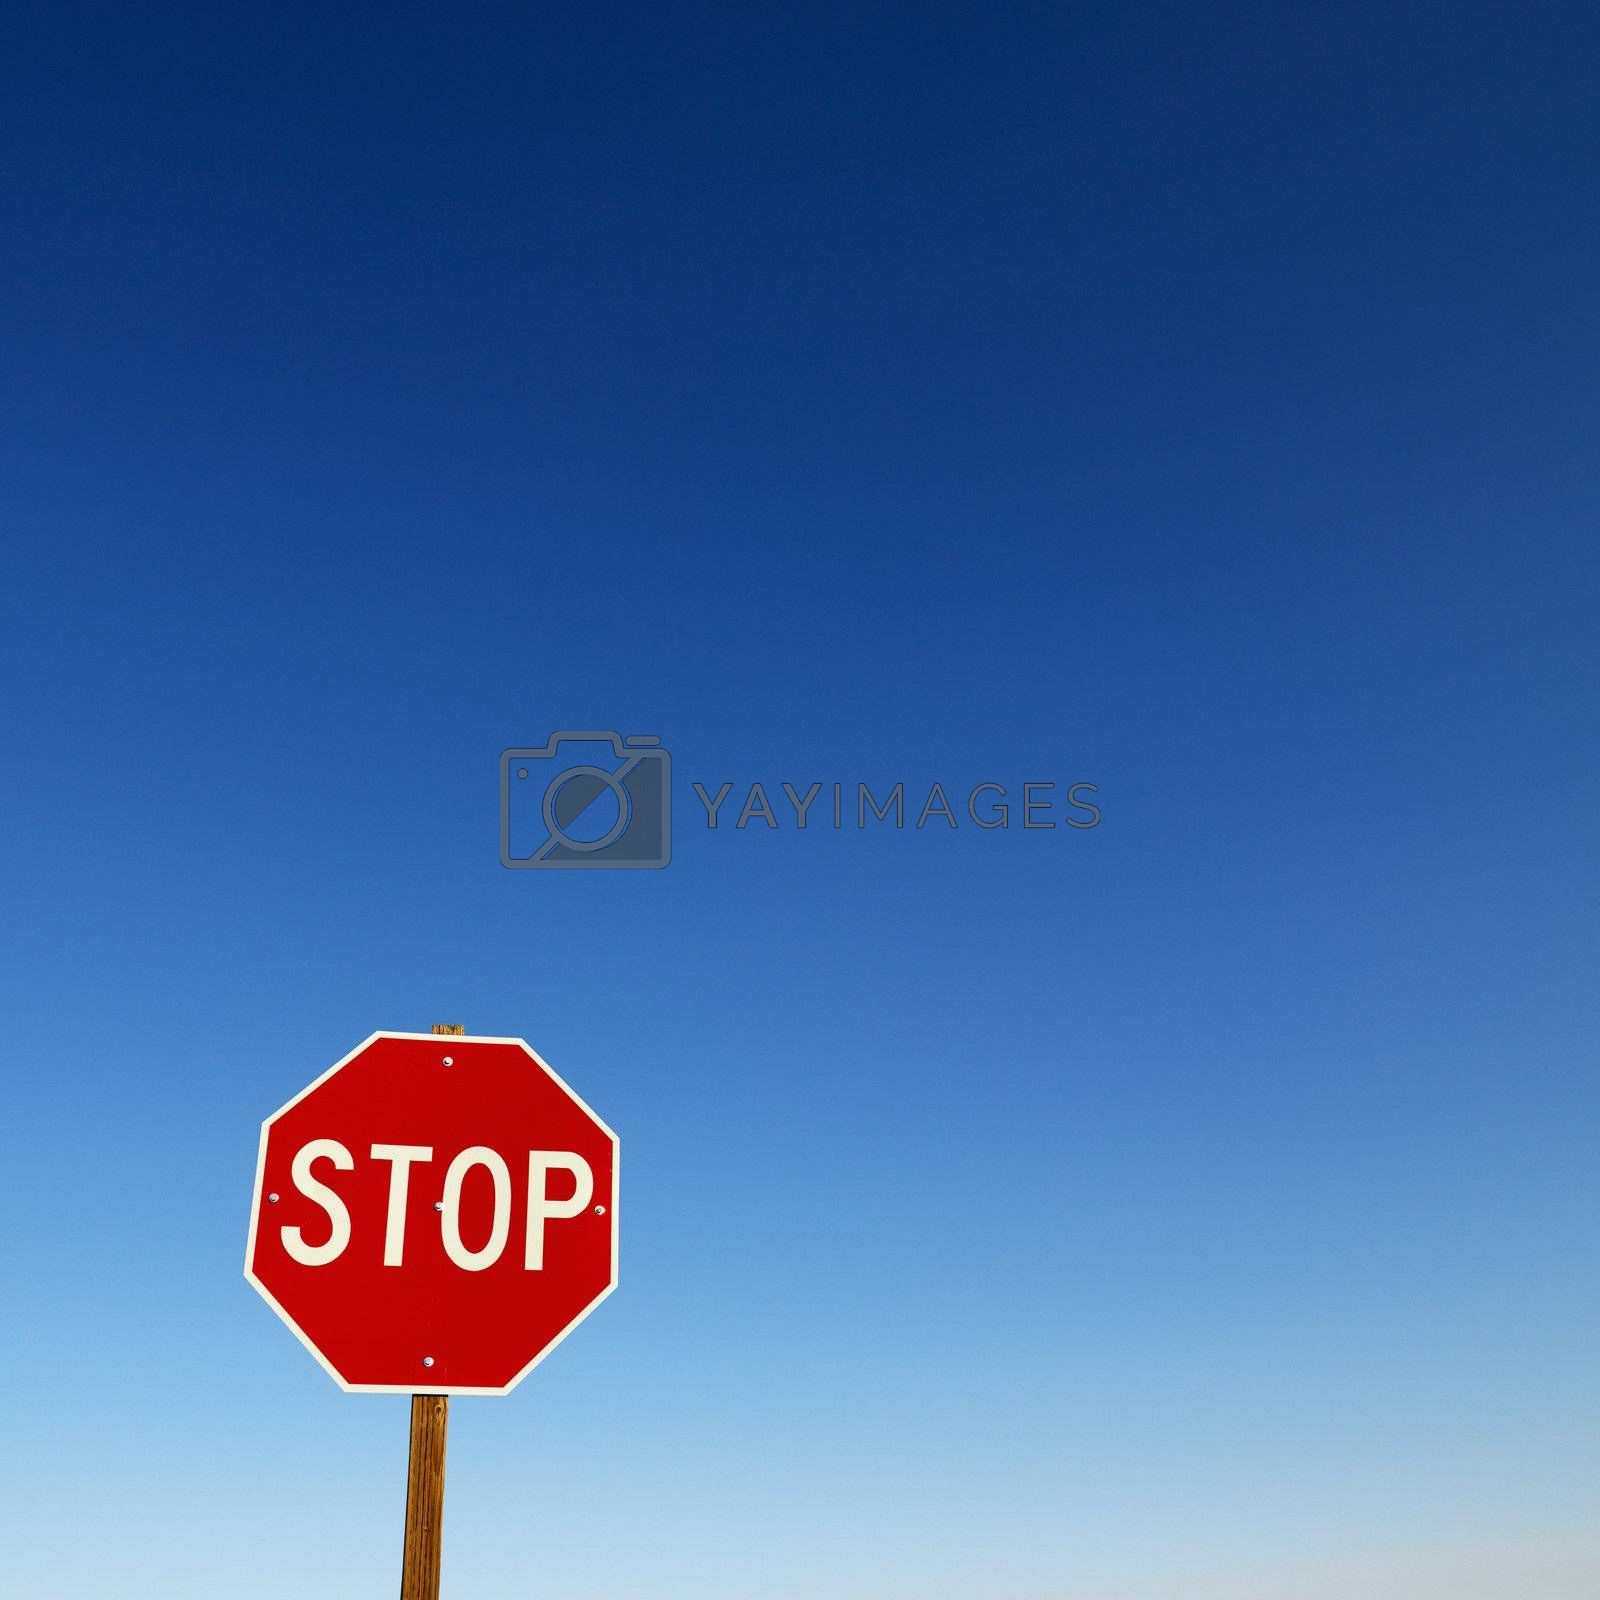 Stop sign. by iofoto